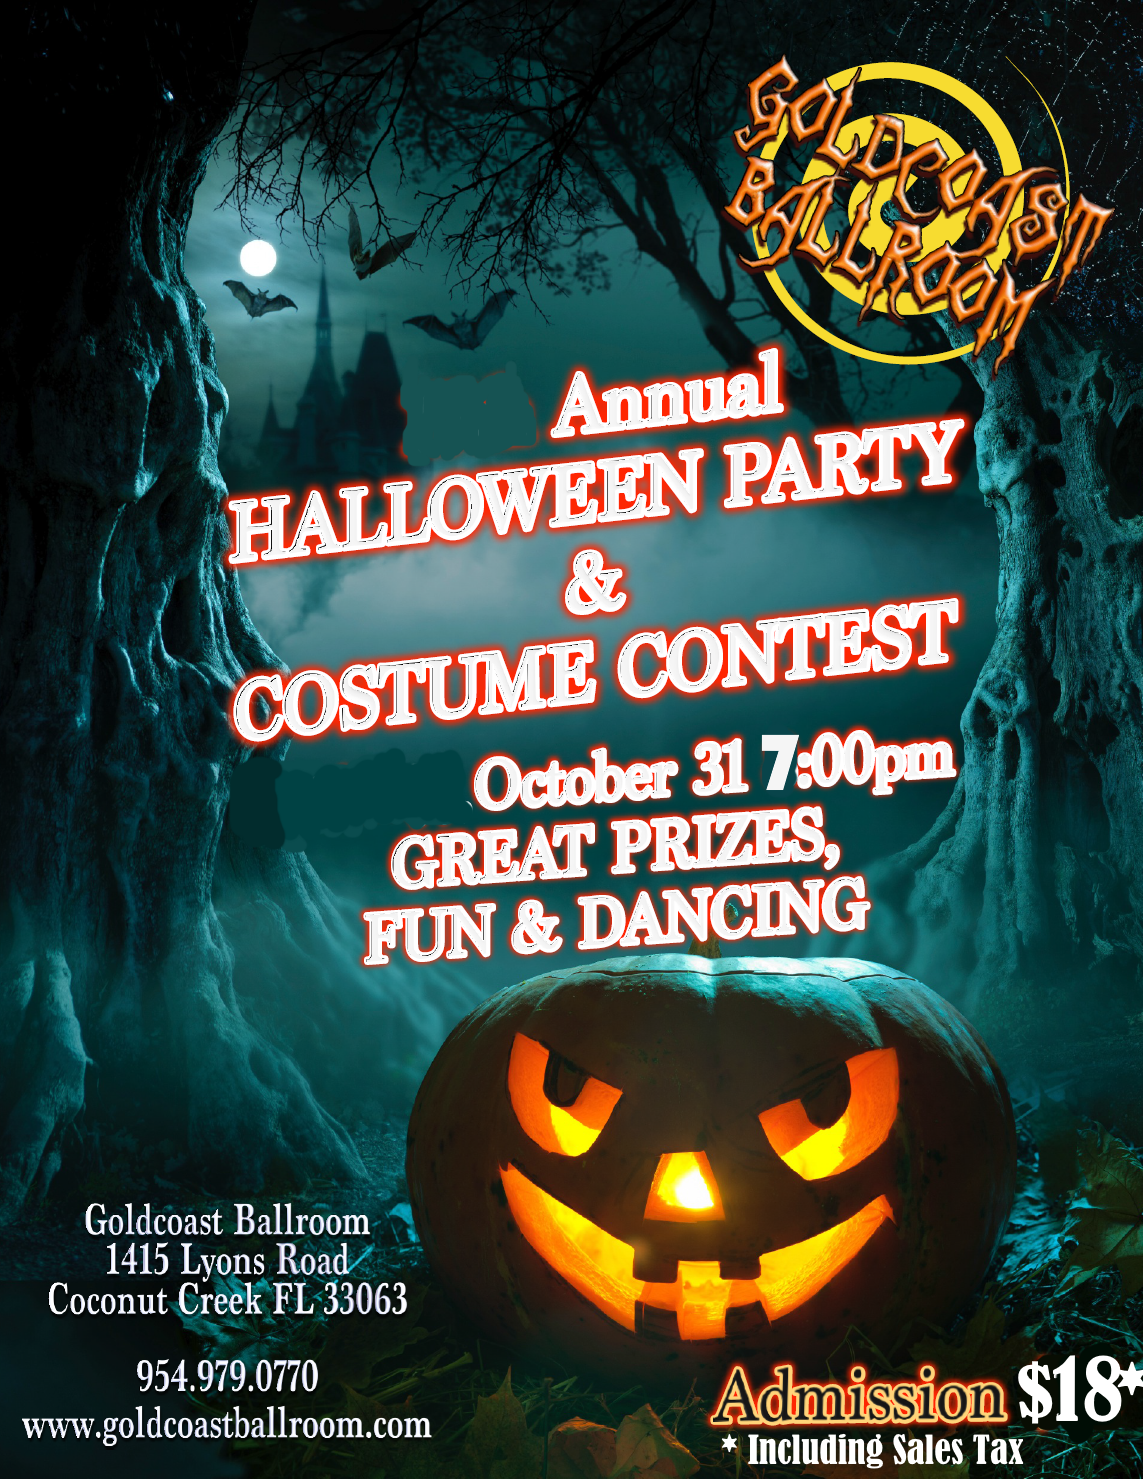 Annual Halloween Party & Costume Contest!! - Win Prizes!! - Wednesday, October 31, 2018 -  7 PM